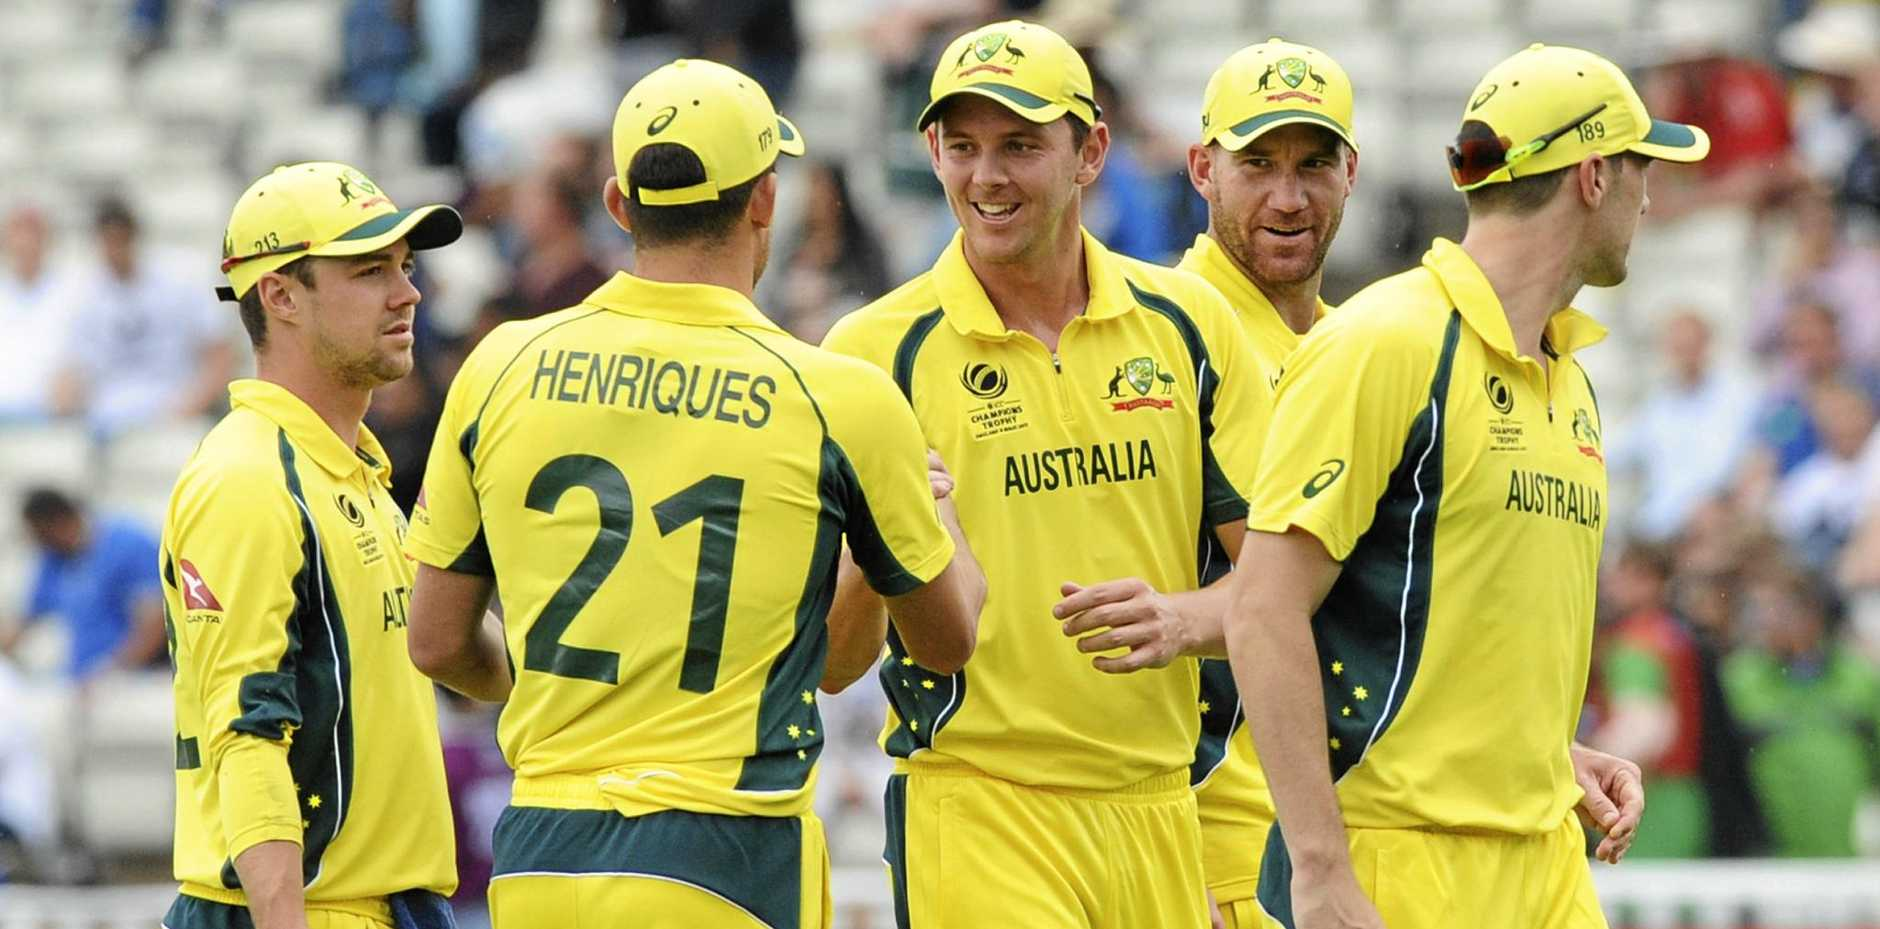 SAFE: The Australian cricketers playing in the Champions Trophy are safe after London attacks.